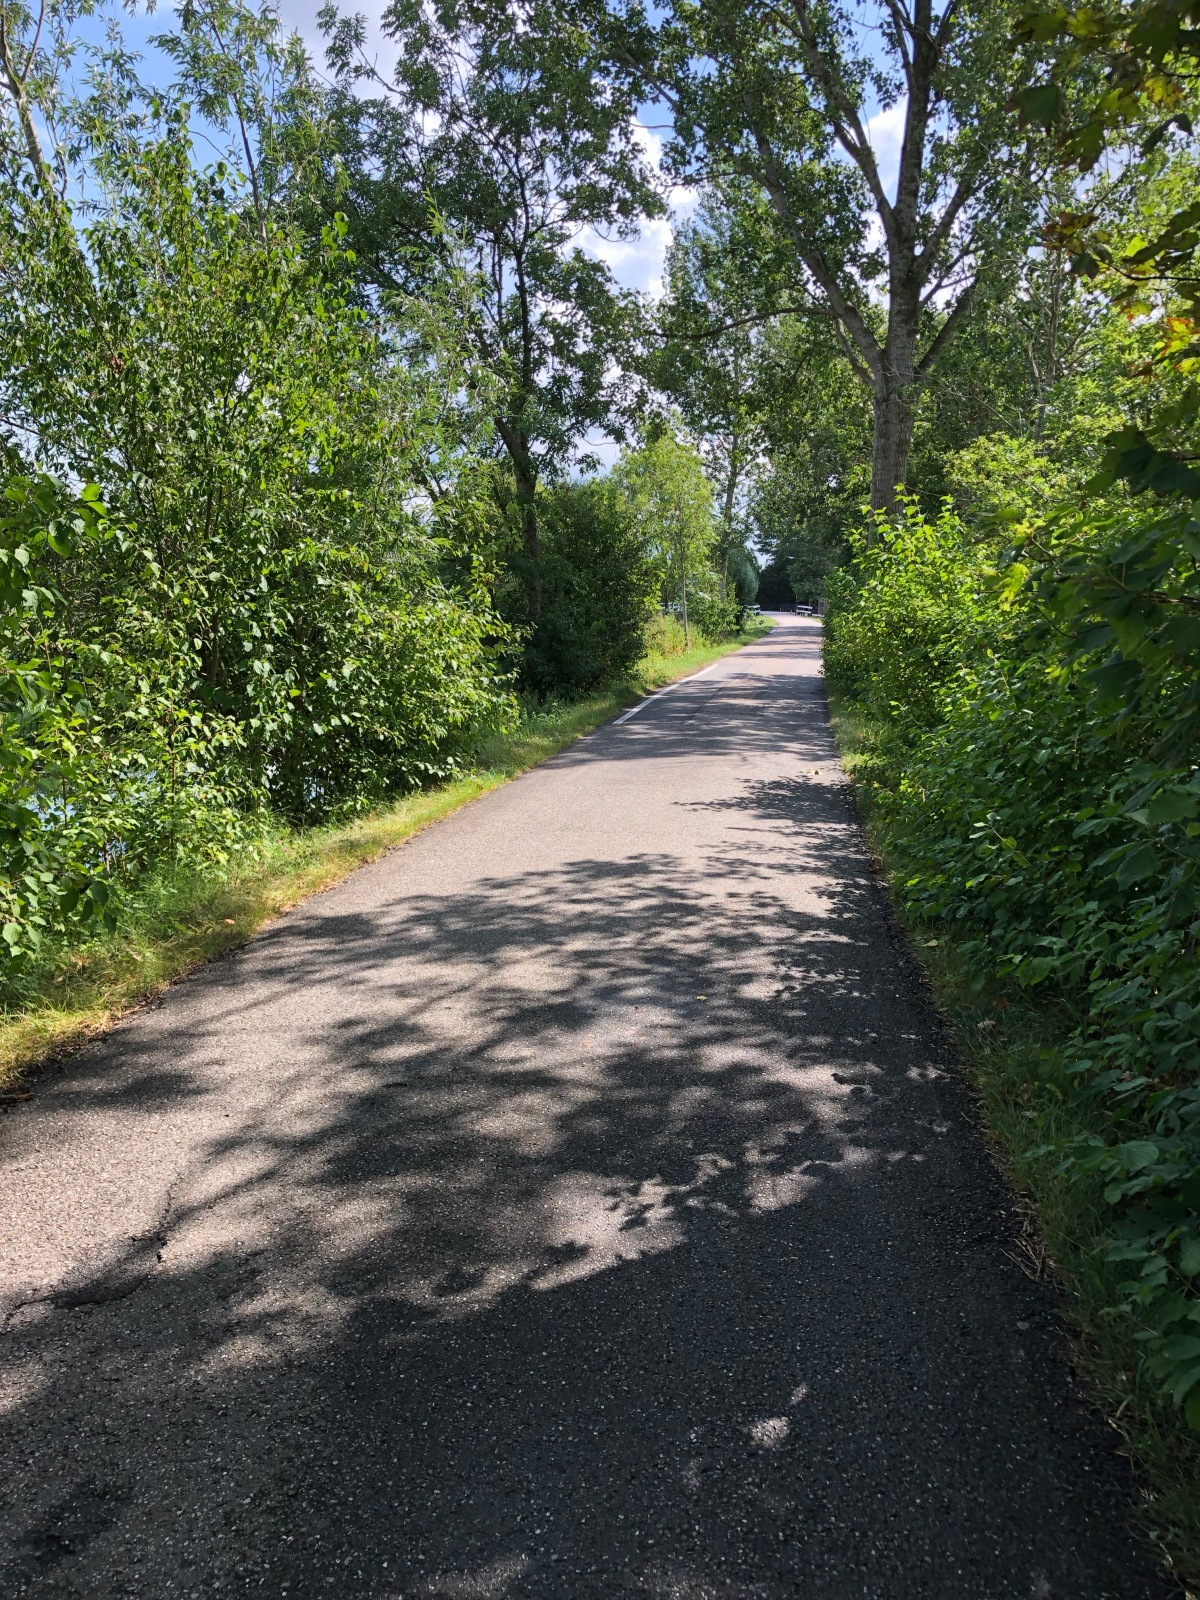 Most of my route was much like this section. Narrow, tree lined and little to no traffic.